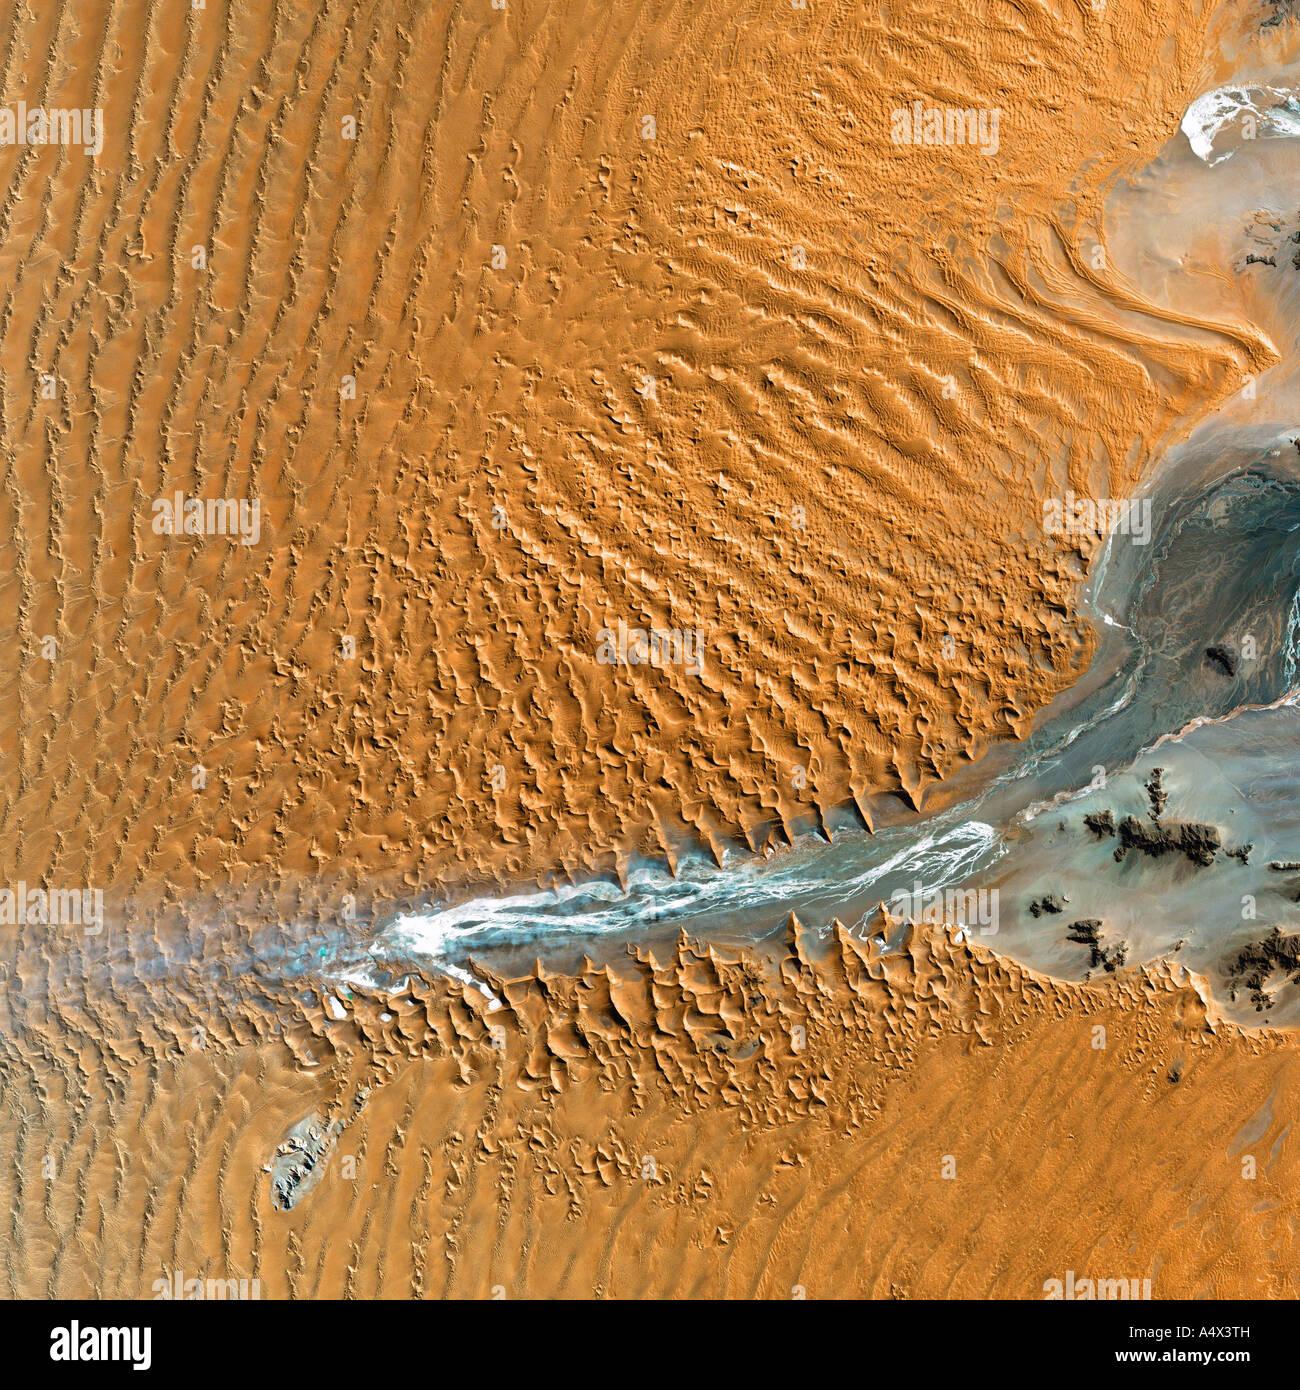 The Namib desert of Namibia seen from space Optimised and enhanced version of an original NASA image - Stock Image